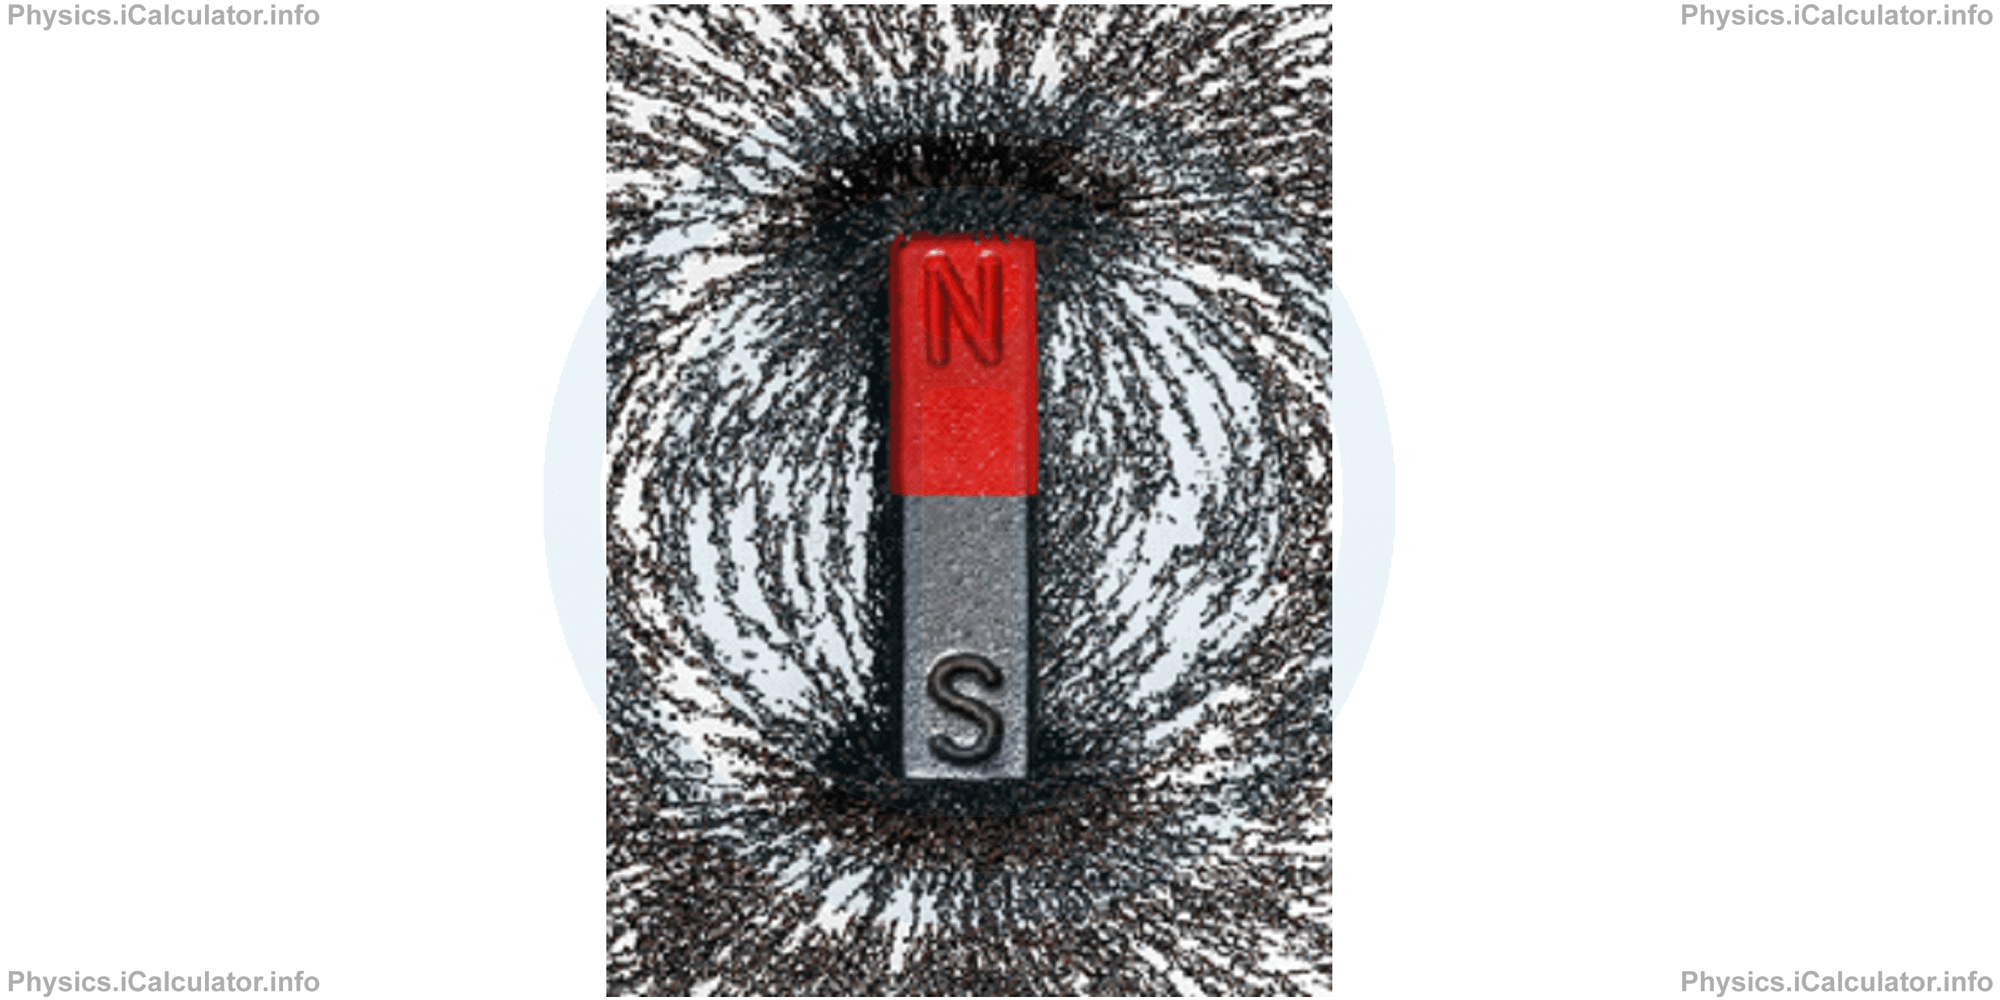 Physics Tutorials: This image provides visual information for the physics tutorial Introduction to Magnetism